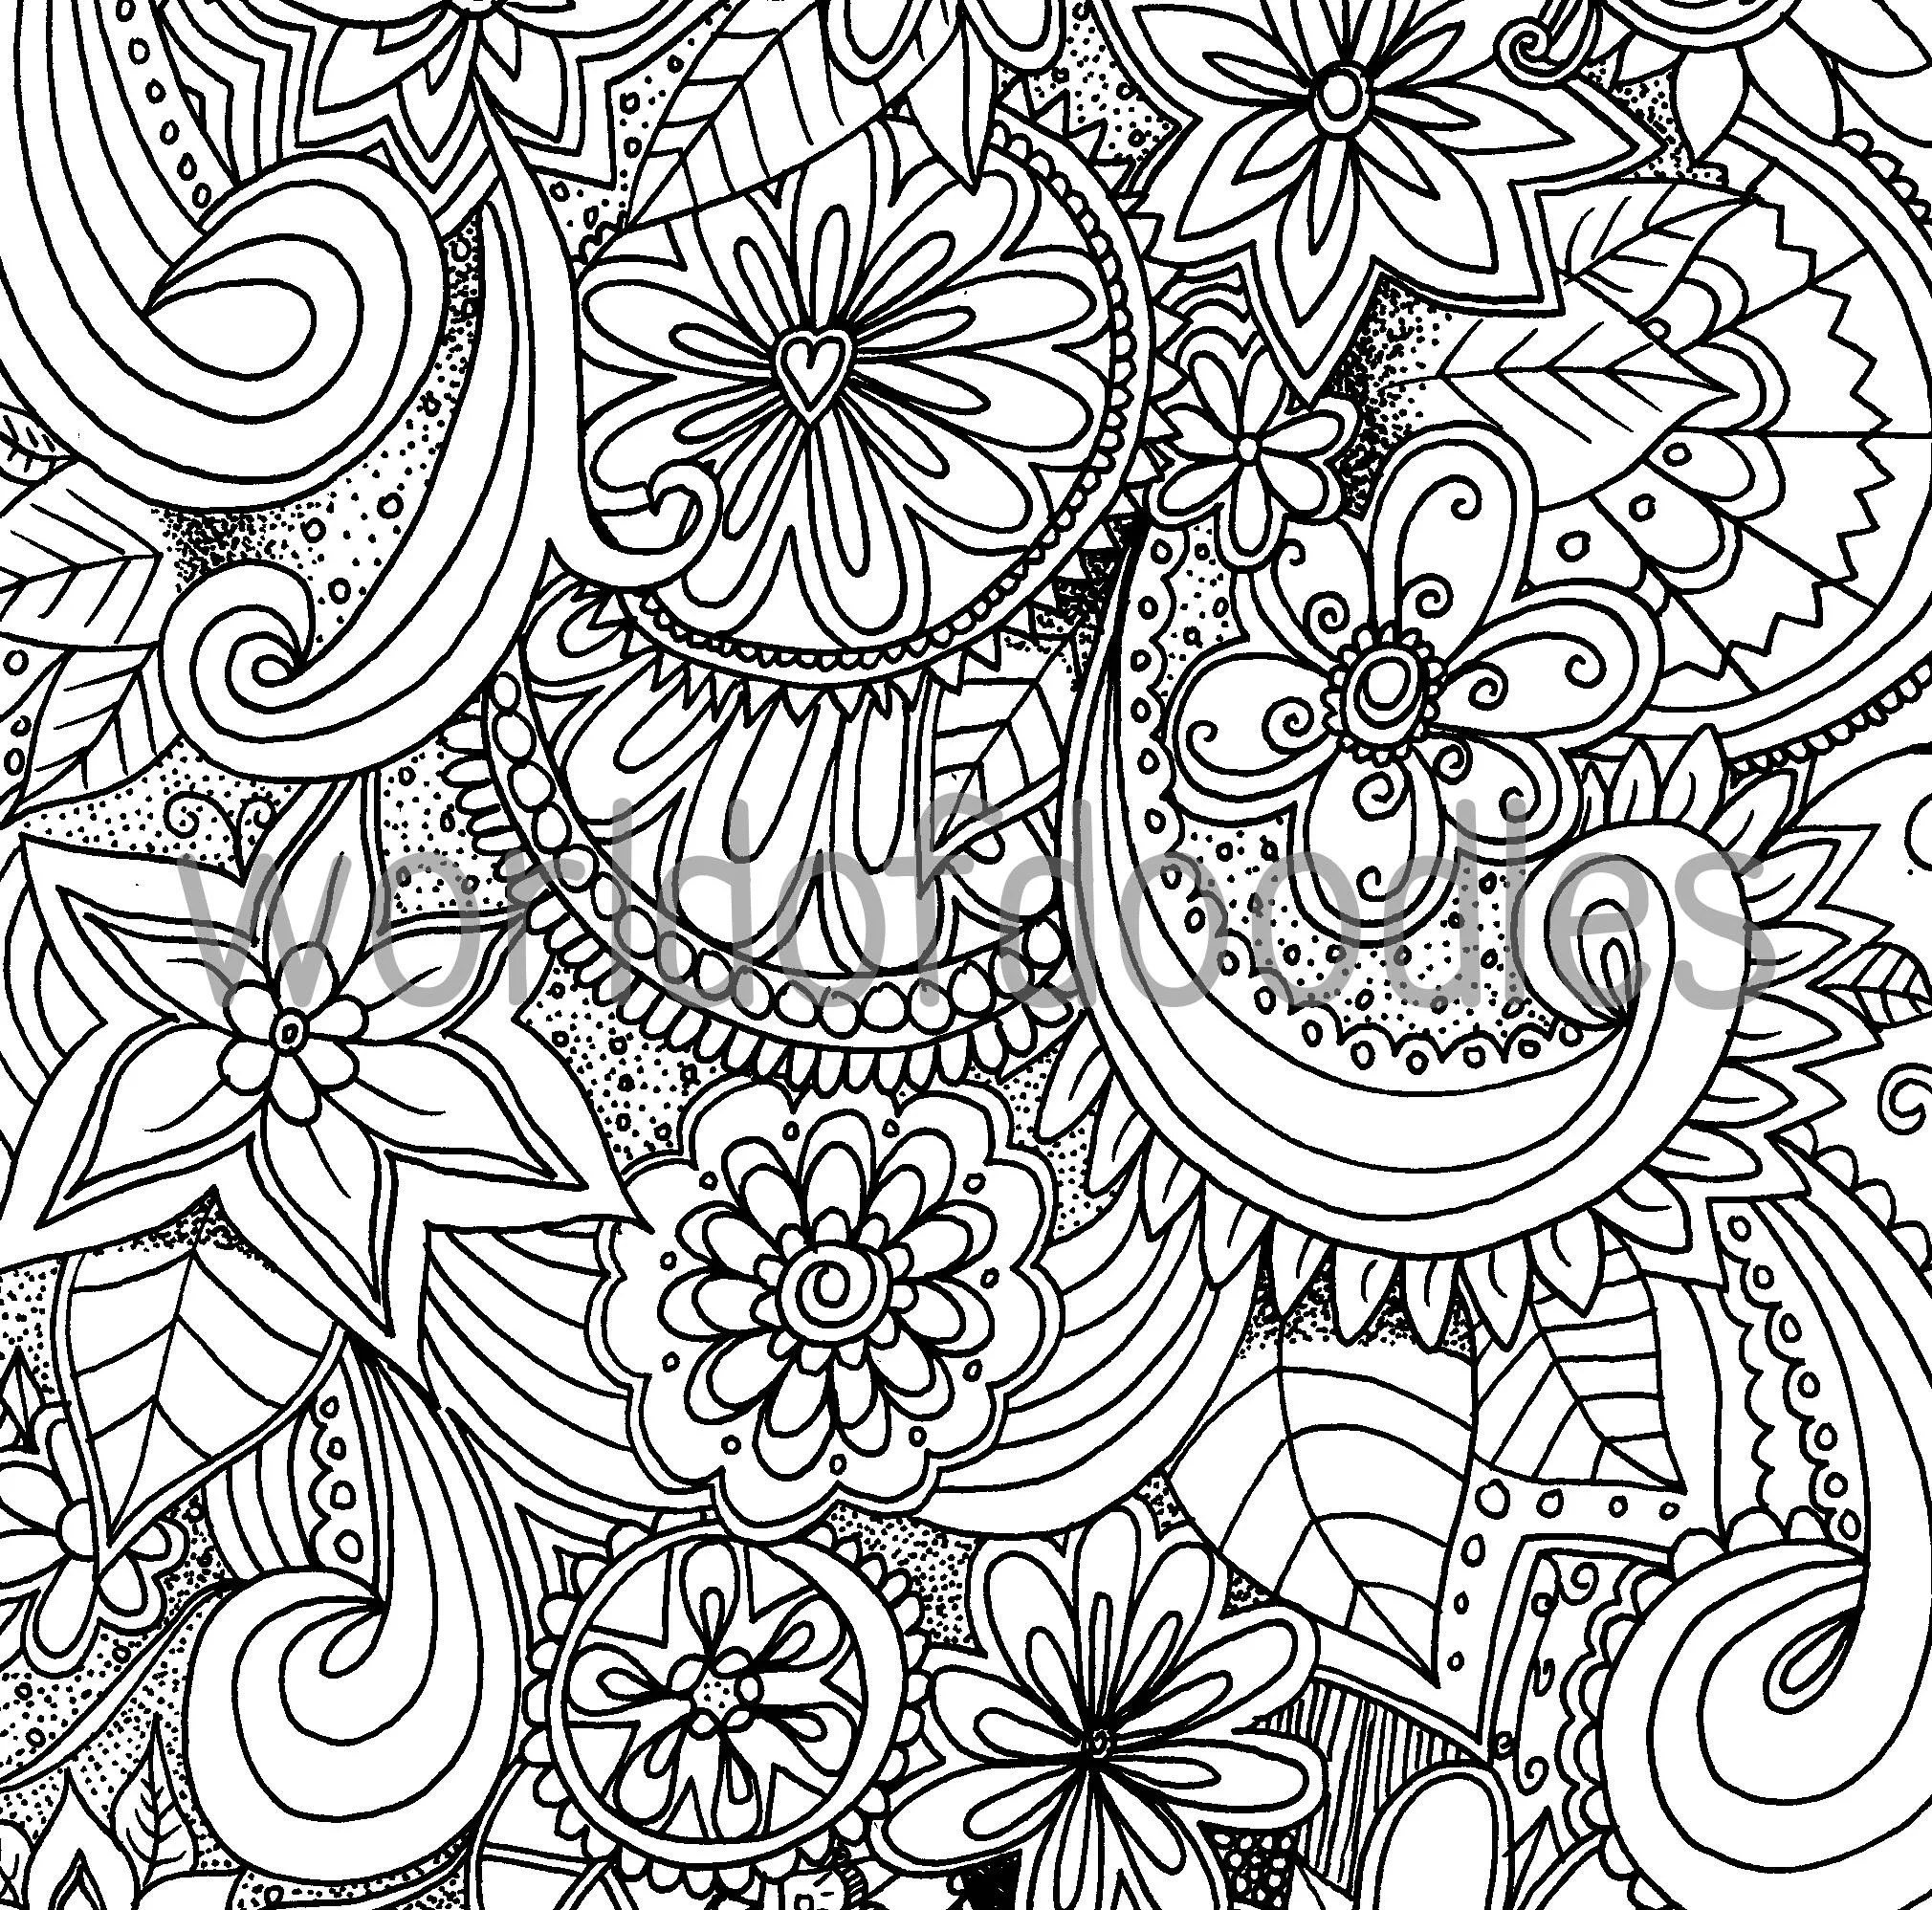 Flower Garden 2 A4 Colouring Page Printable Download